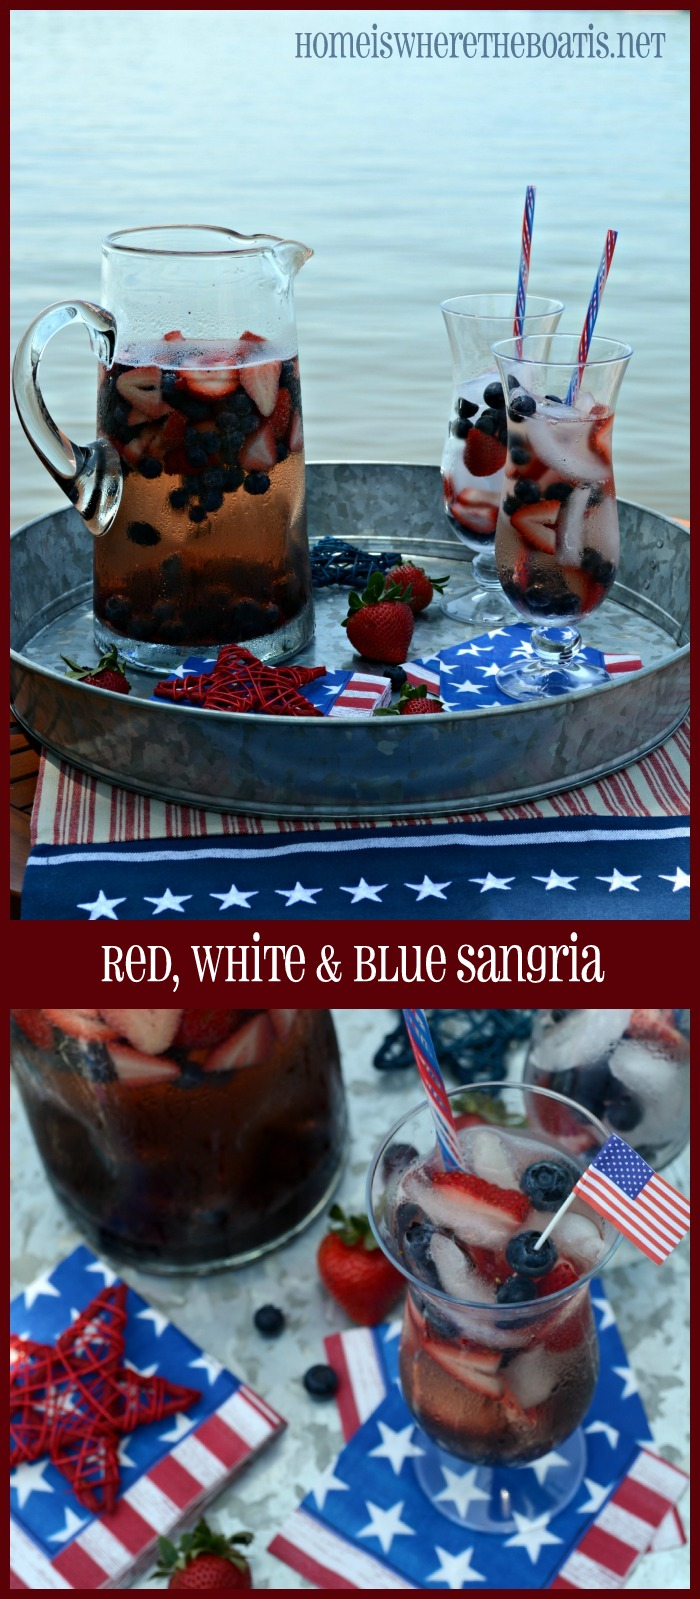 Red, White & Blue Sangria